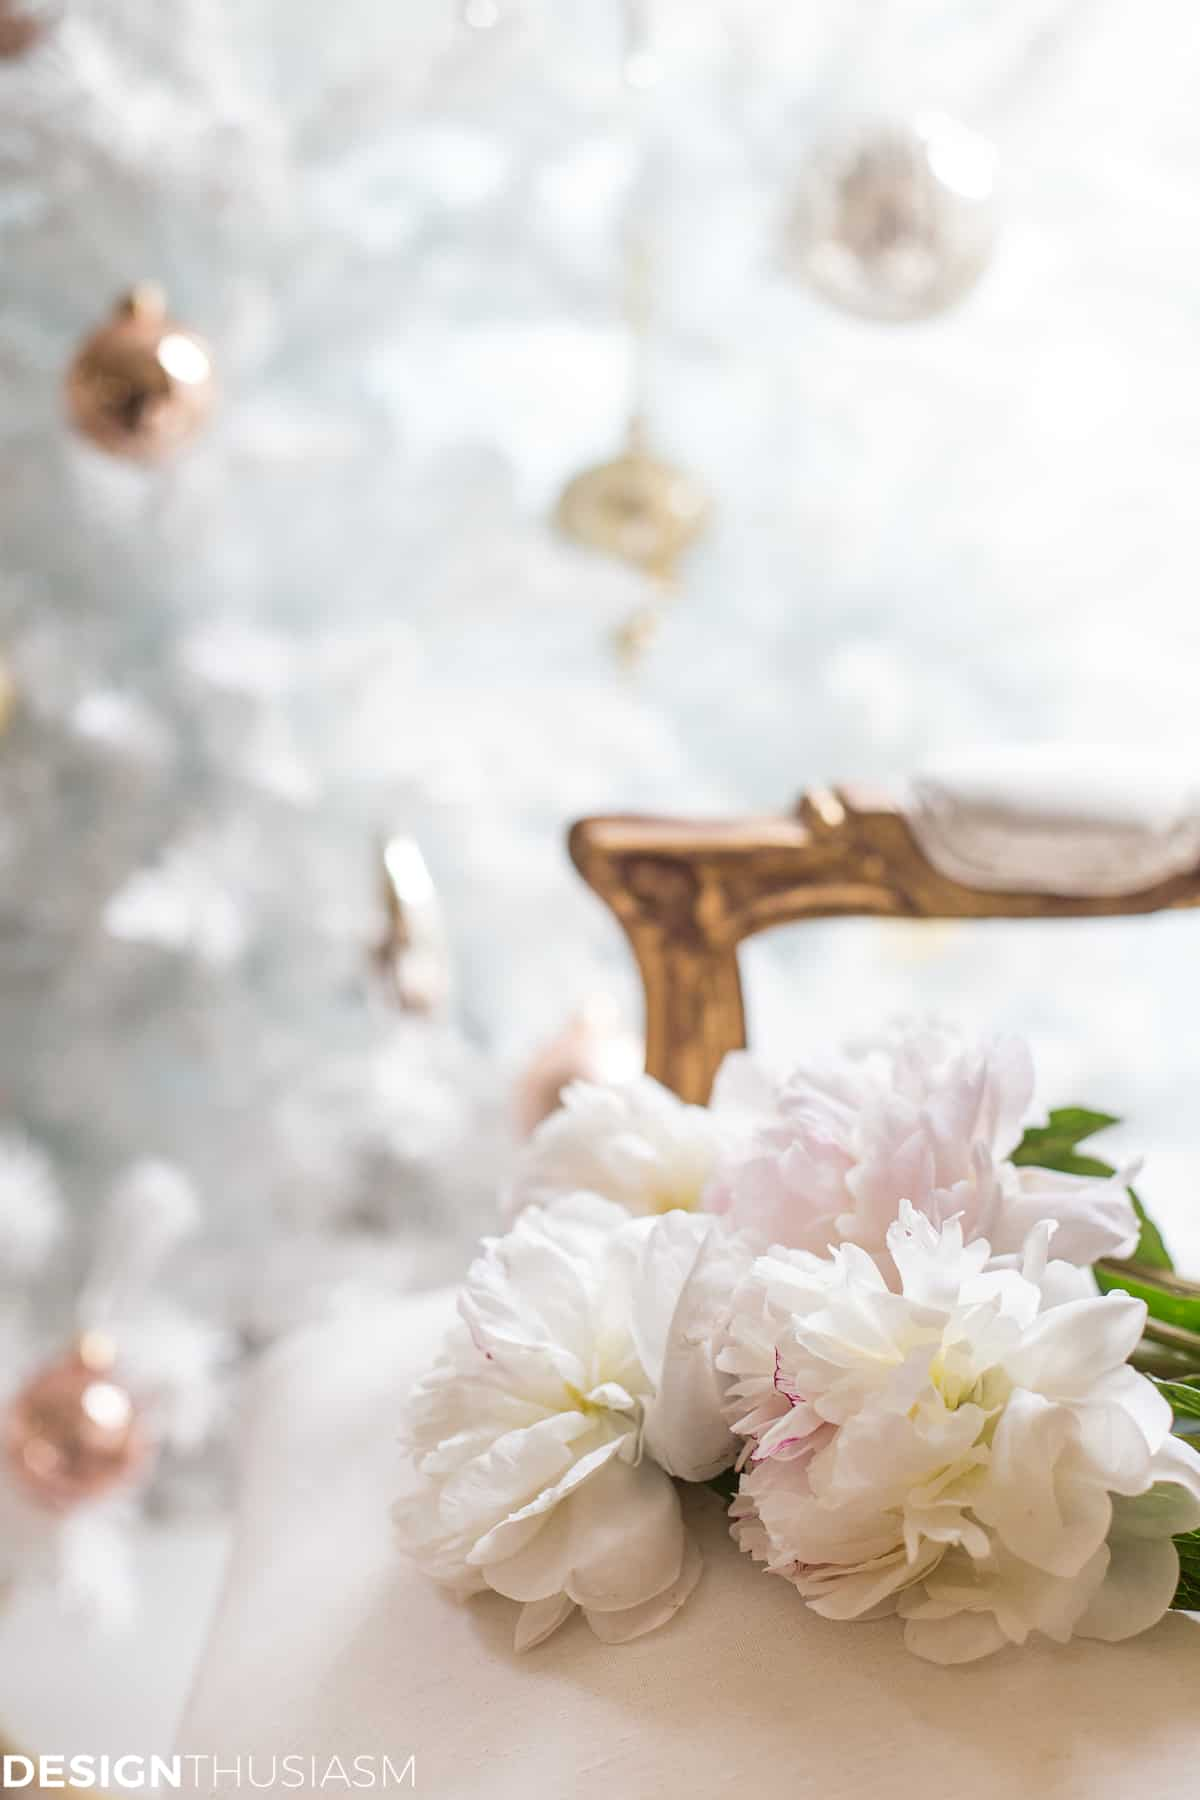 Complementing Your French Style With a White Christmas Tree